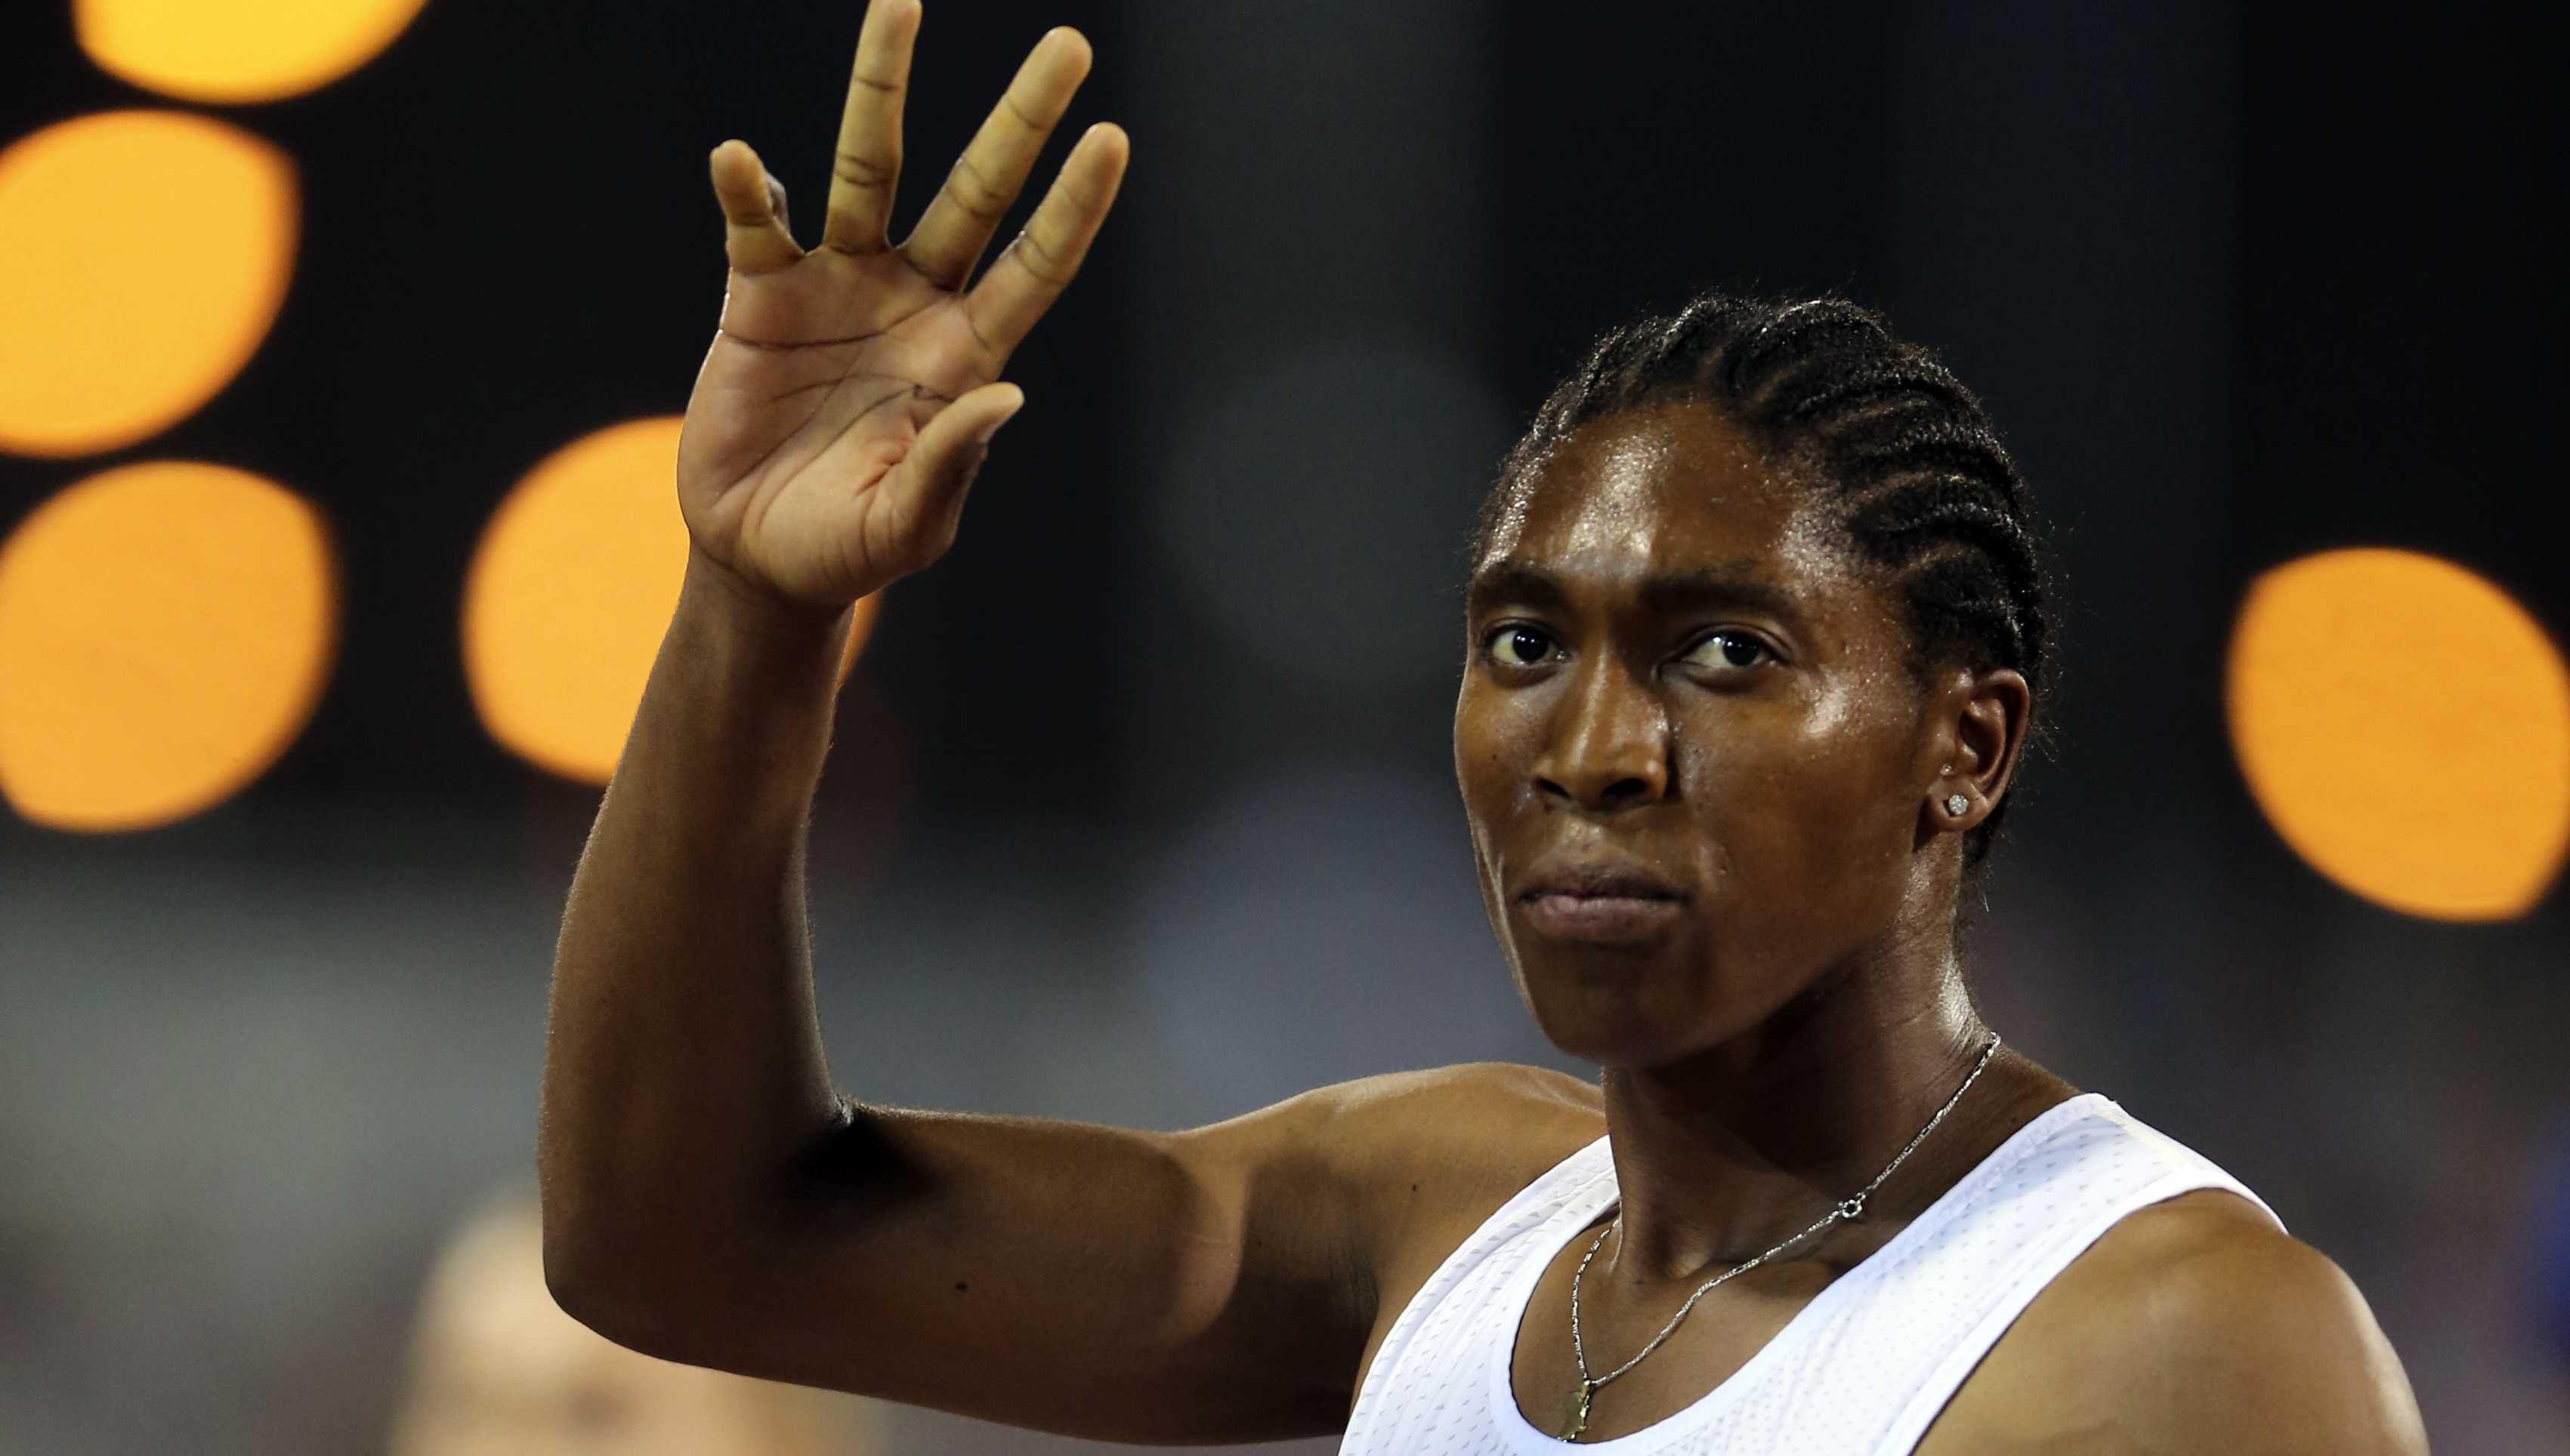 South Africa's Caster Semenya celebrates after she won the woman's 1500 meter during the Qatar Diamond League in Doha, Qatar, Friday, May 4, 2018.